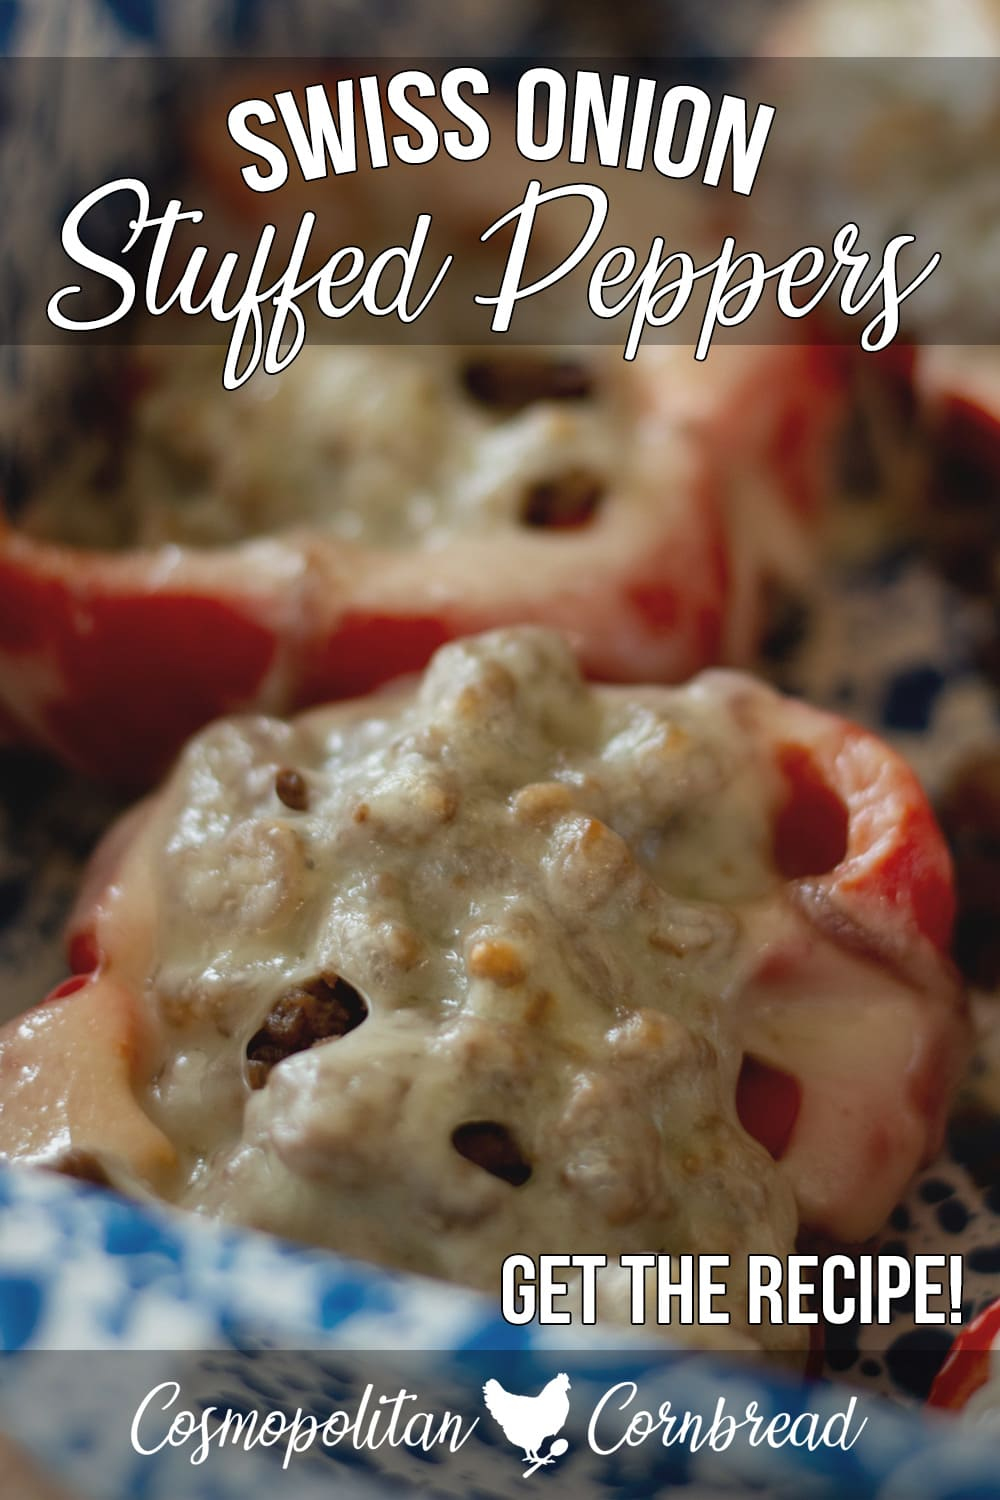 Swiss Onion Stuffed Peppers - Red bell peppers stuffed with caramelized onions, seasoned beef and smothered in melted Swiss cheese.